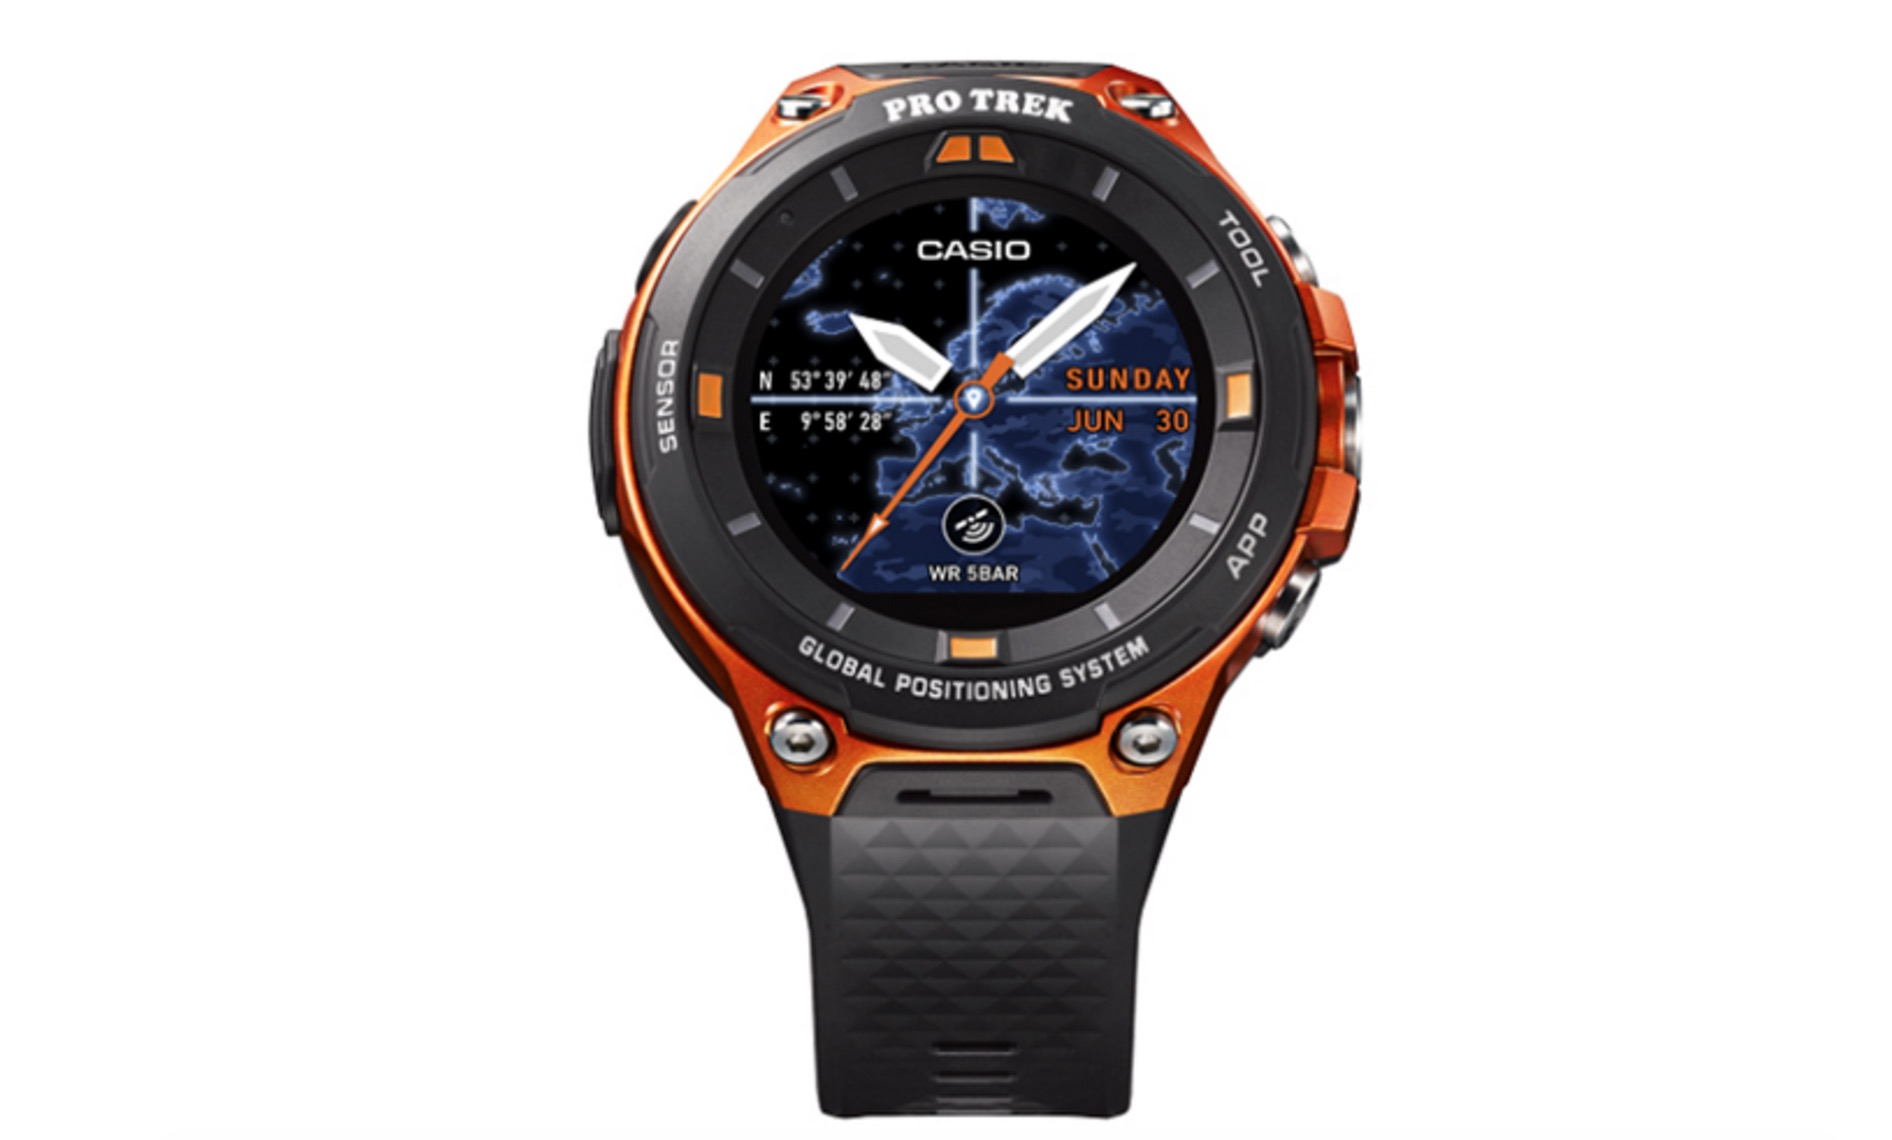 Casio has a new rugged smartwatch with Global Positioning System and Android Wear 2.0